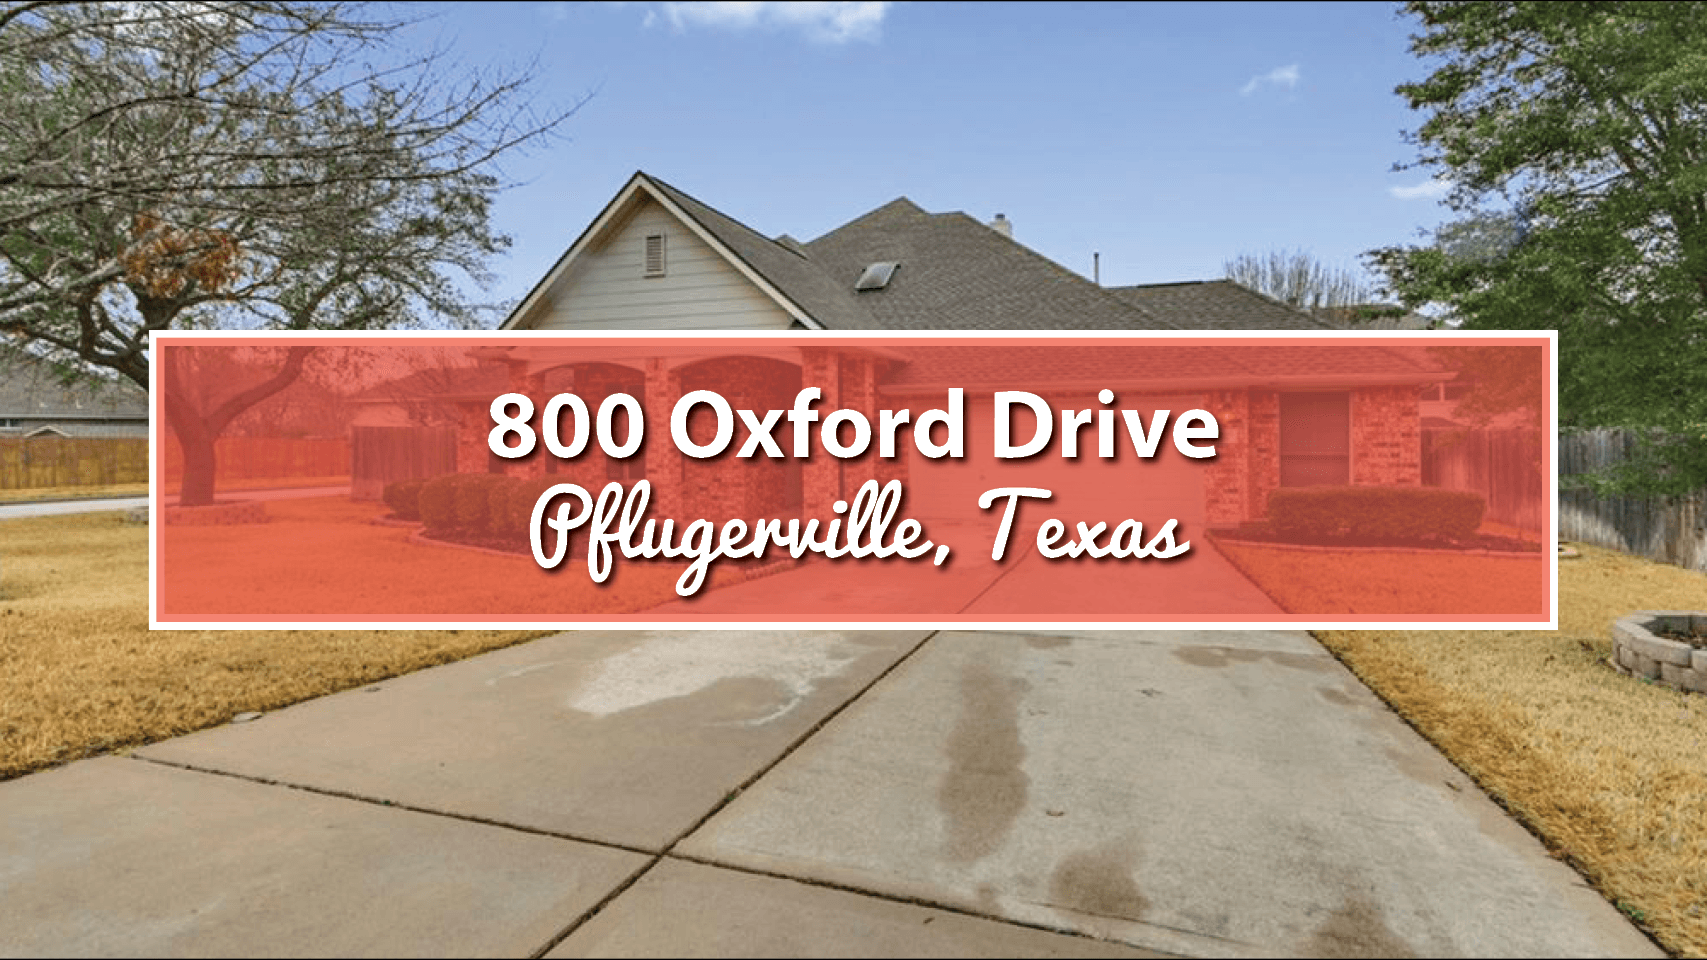 Featured Property: 800 Oxford Drive, Pflugerville